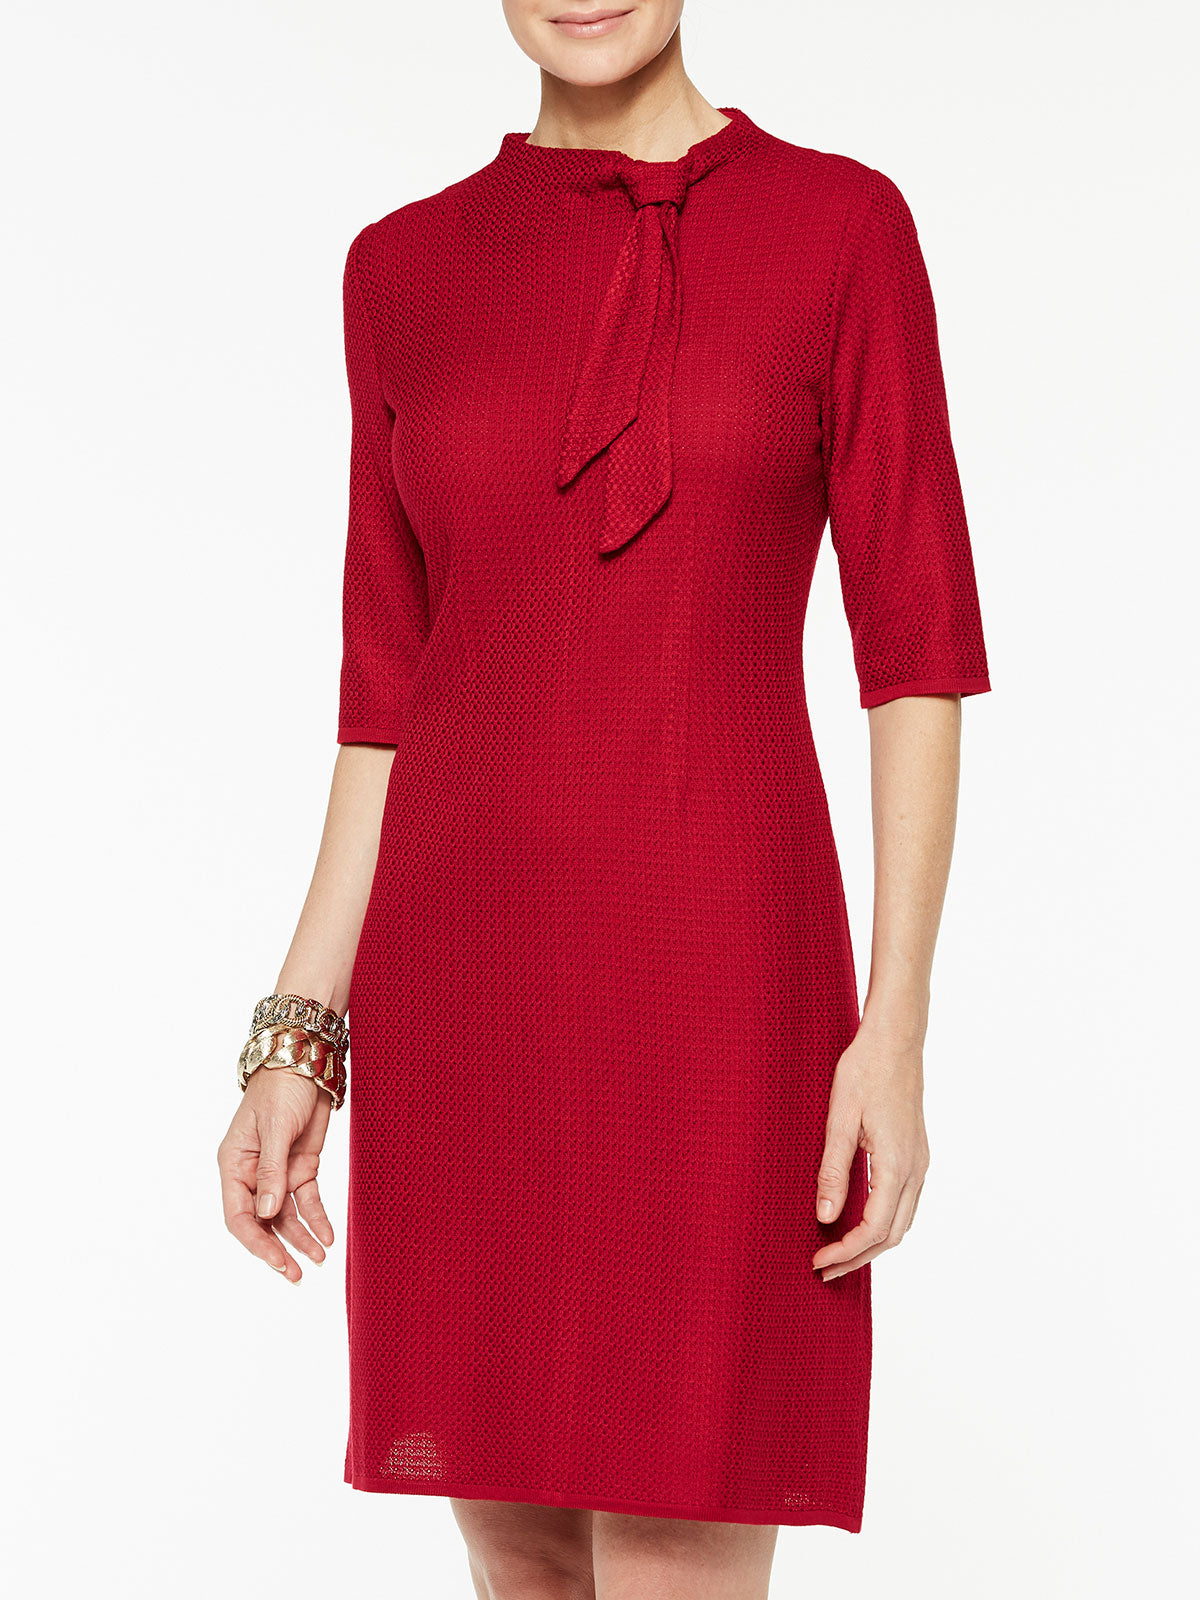 Scarf Tie Sheath Dress Color Crimson Red